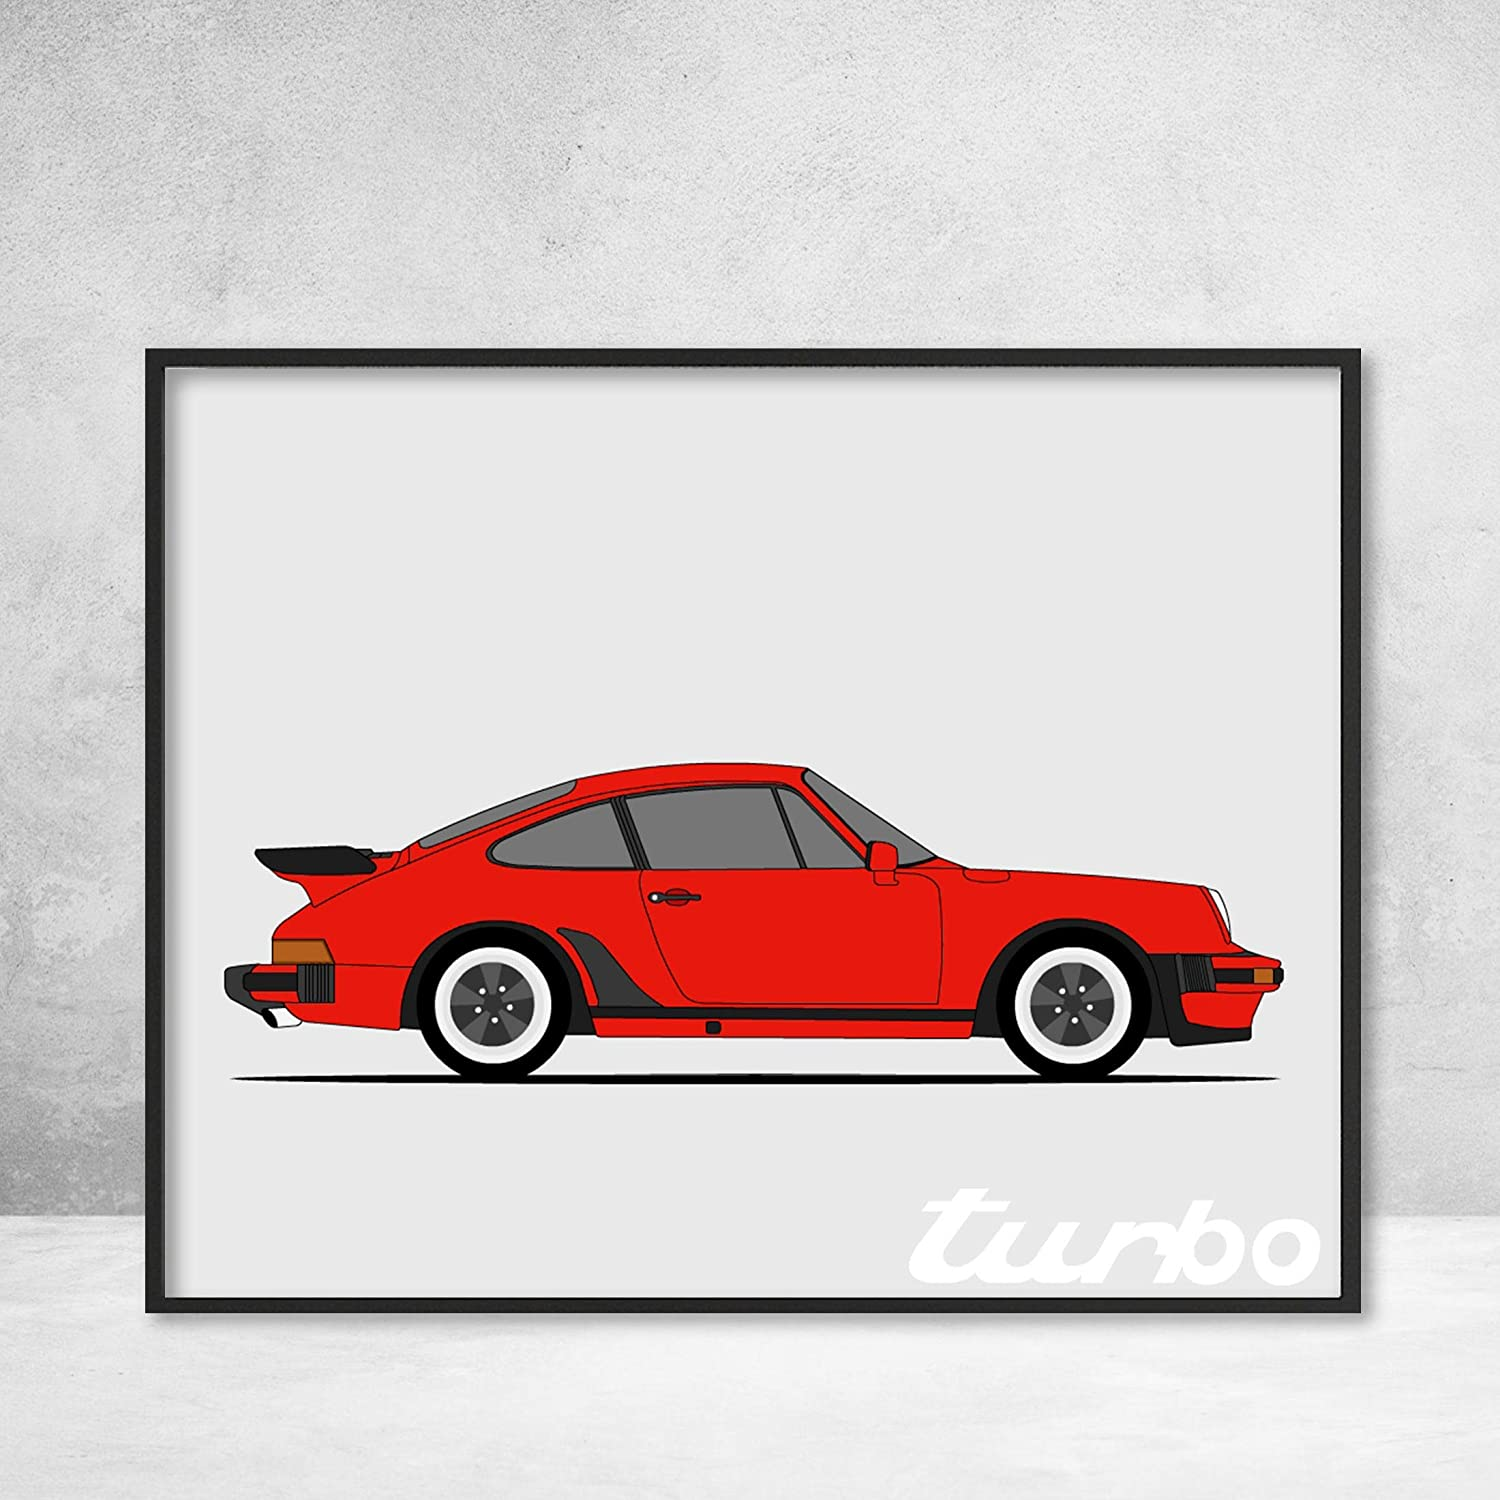 Porsche 930 (Porsche 911 Turbo) Side Profile View Poster Print Wall Art Decor Handmade